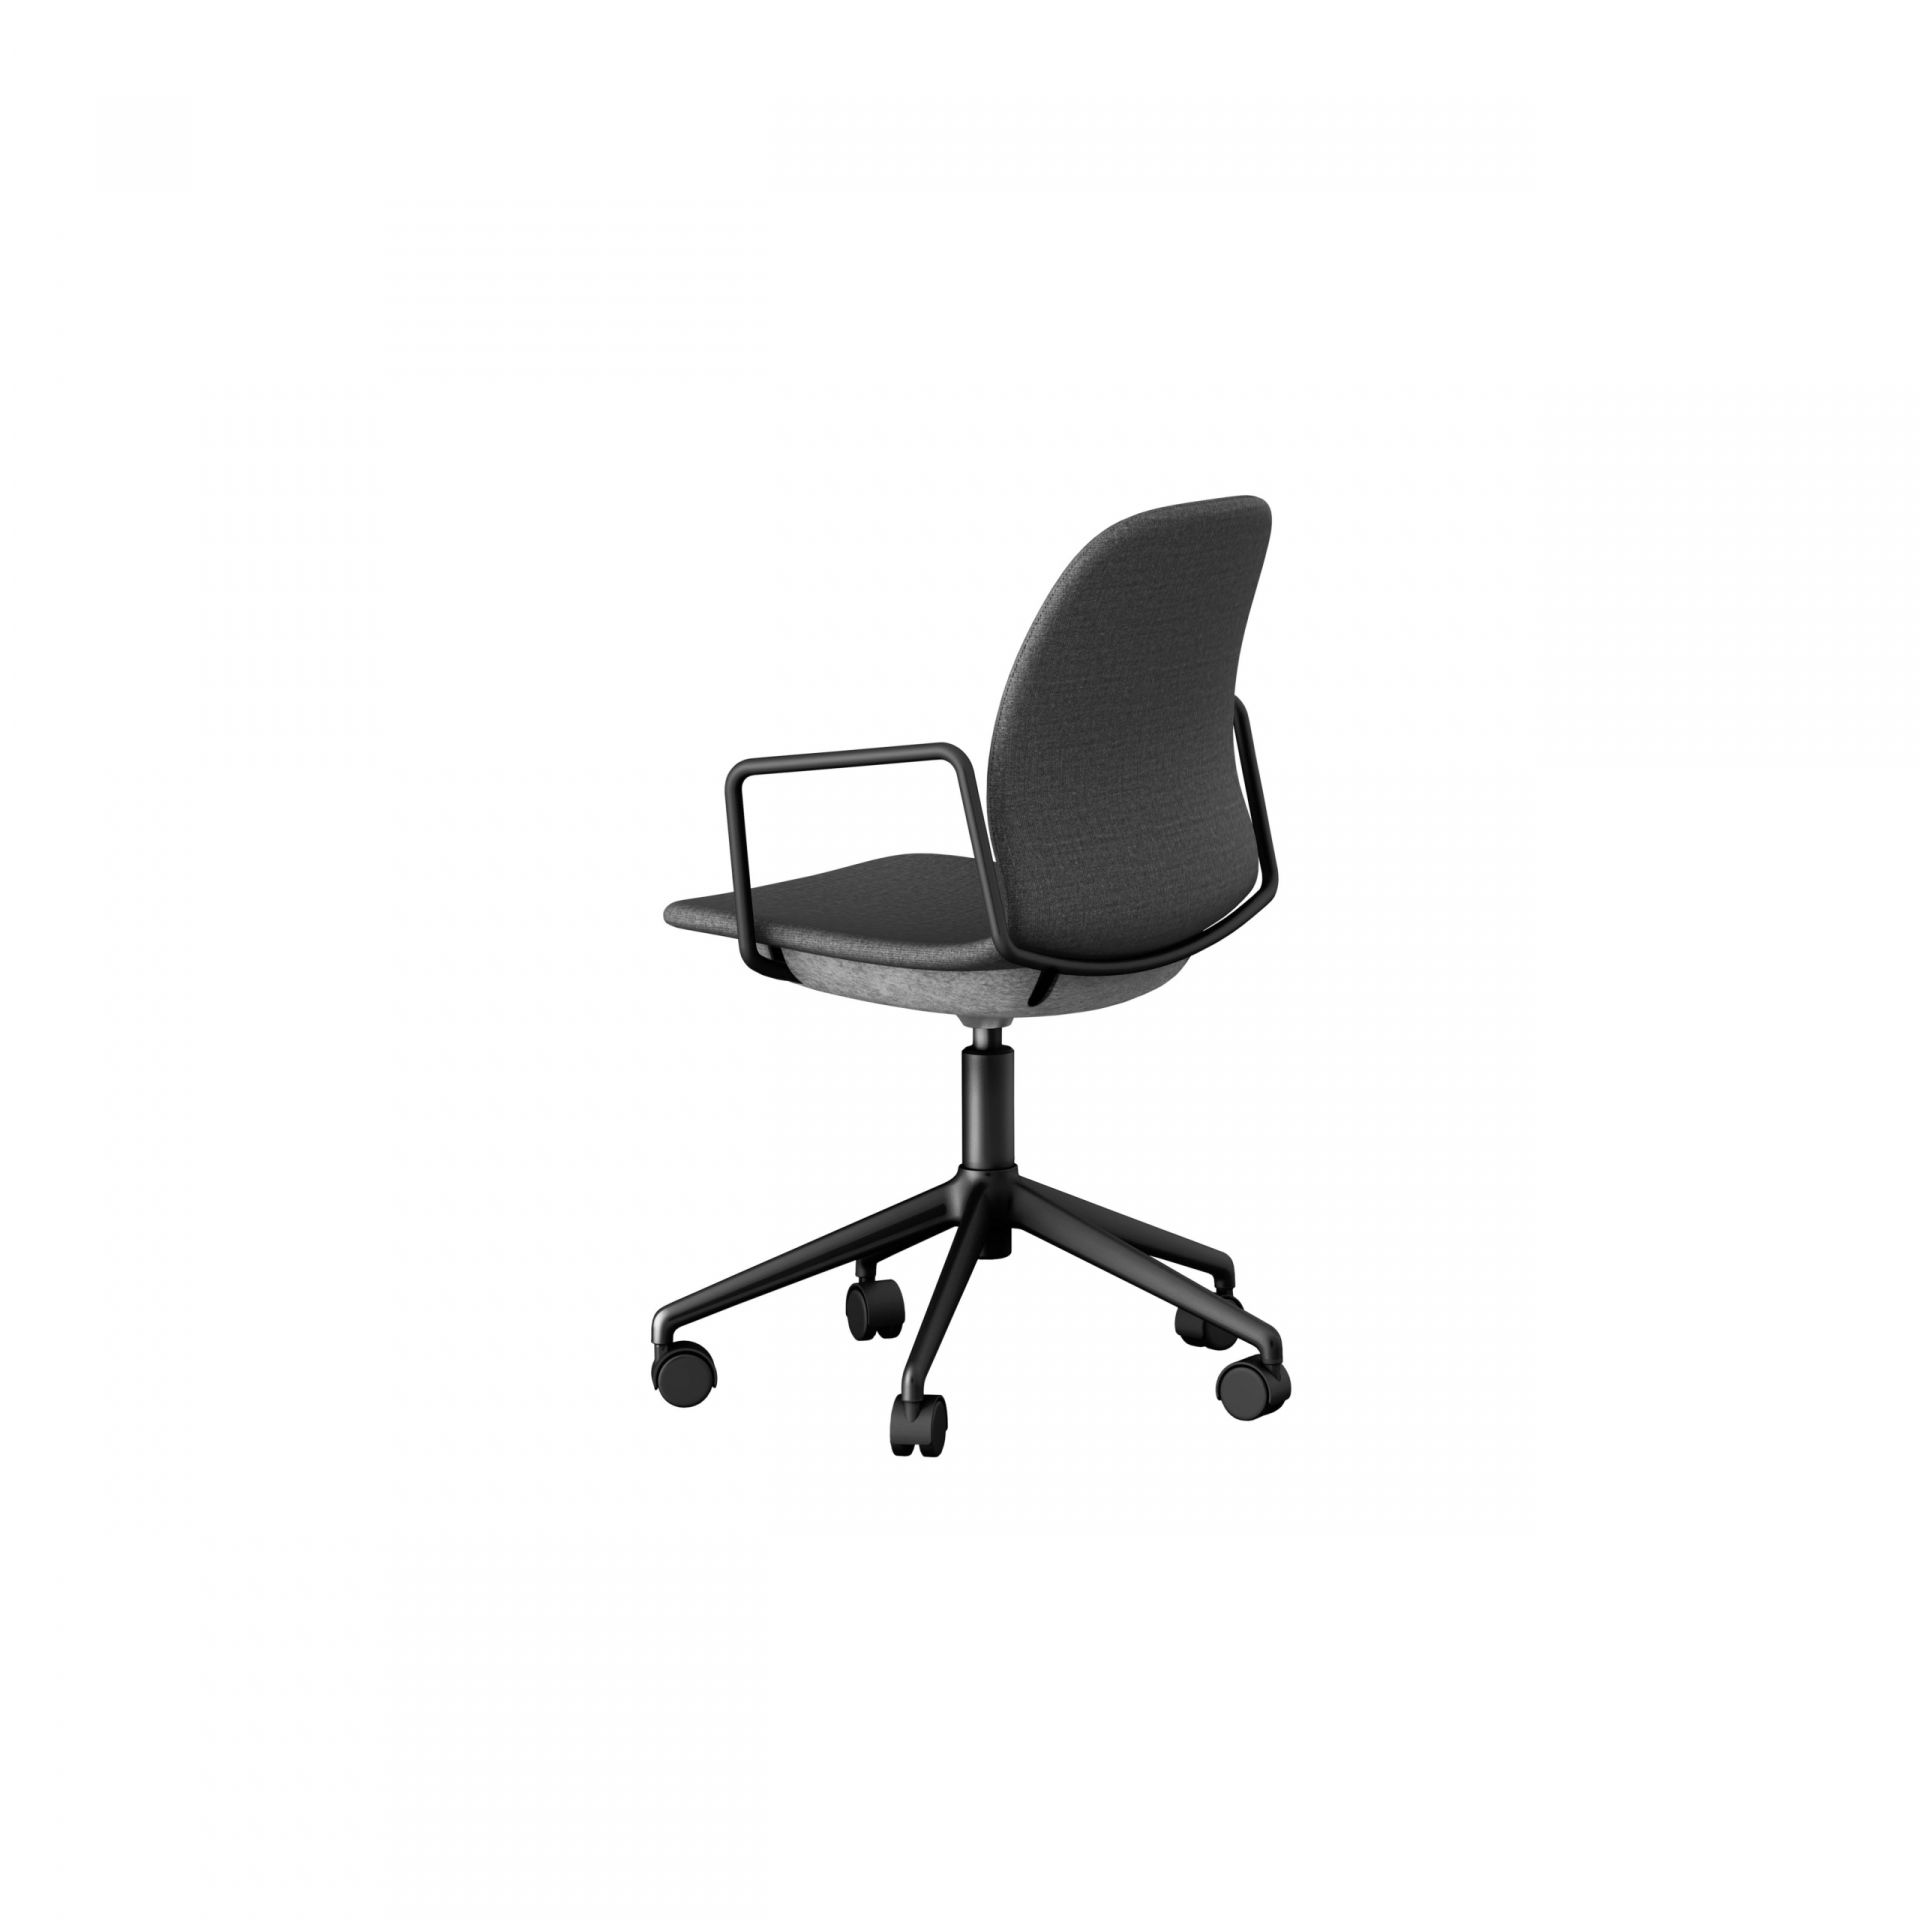 Archie Chair with swivel base product image 4